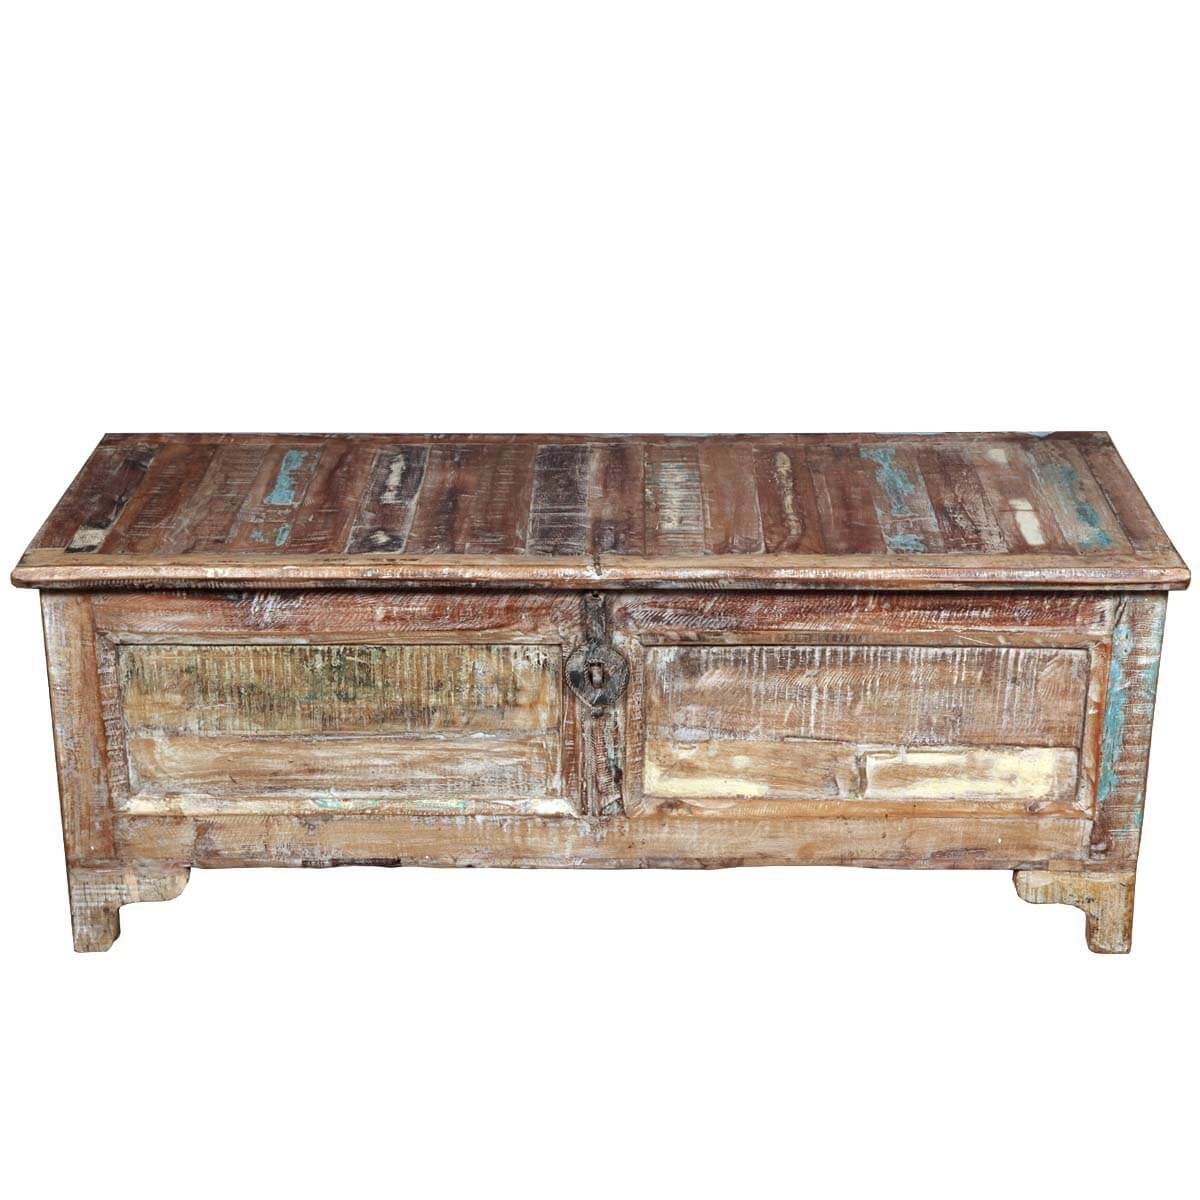 Rustic reclaimed wood storage coffee table chest Coffee table storage chest